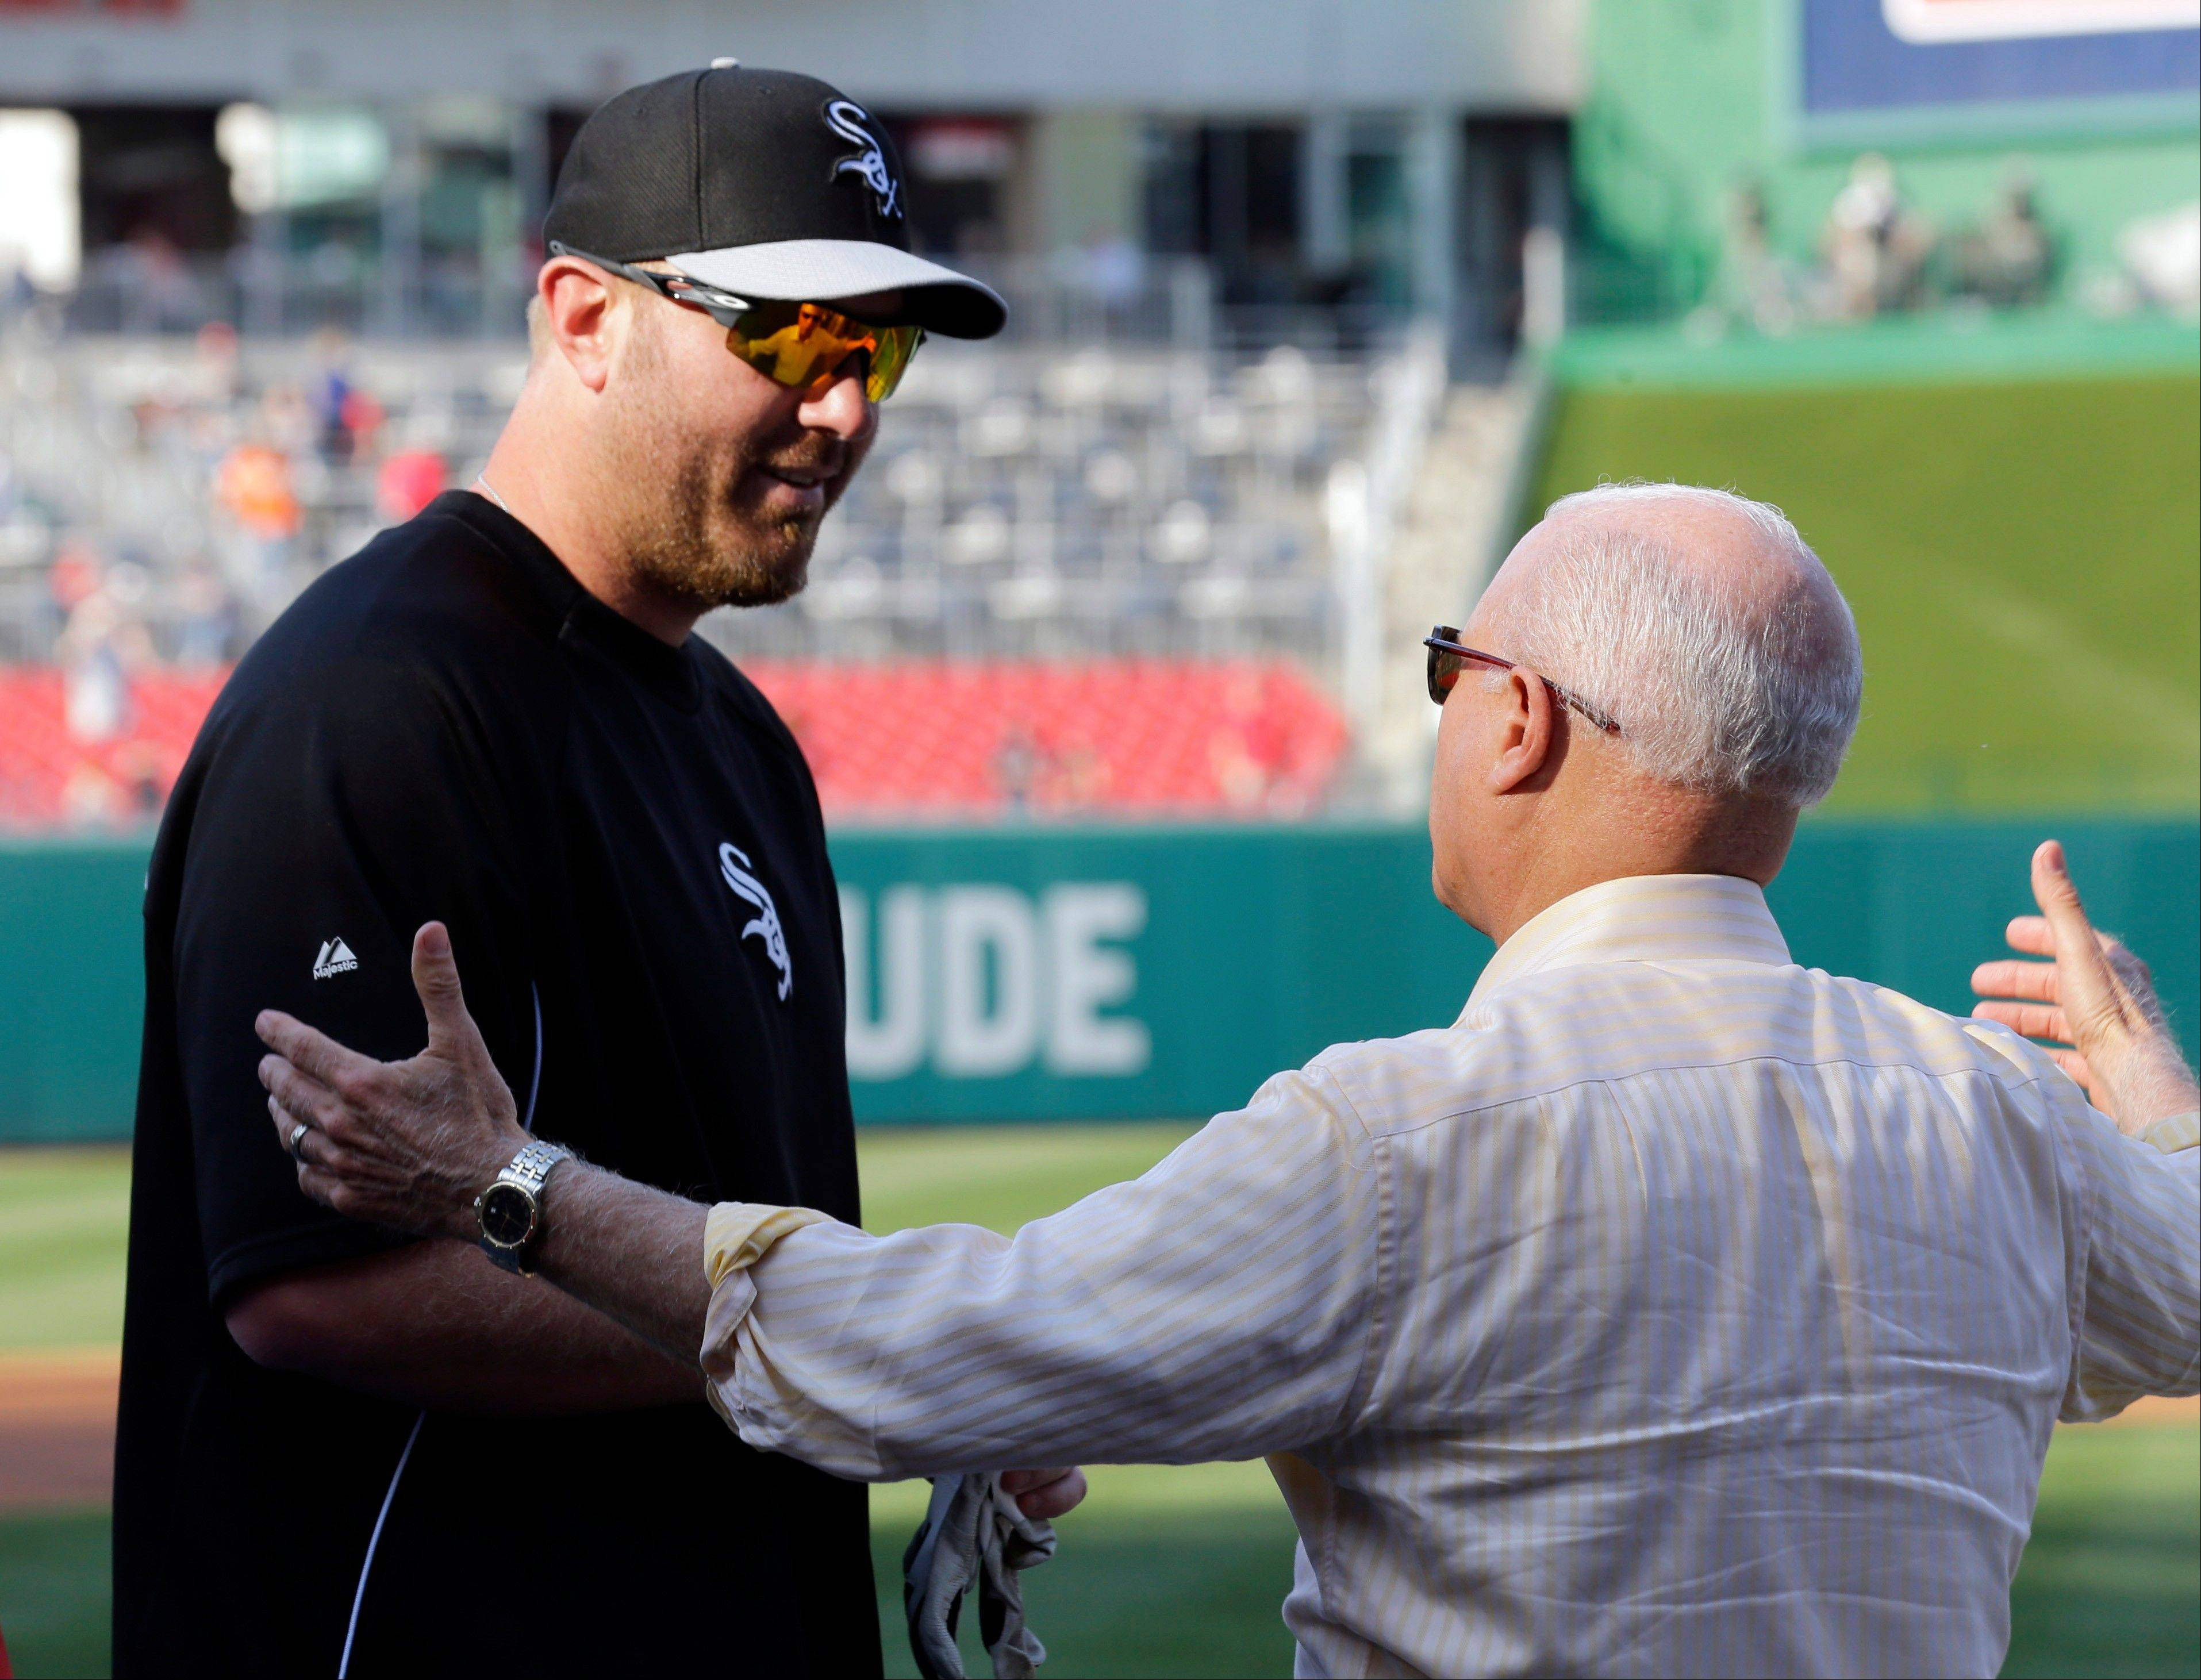 Chicago White Sox designated hitter Adam Dunn, here greeted by Washington Nationals principal owner Mark Lerner, didn't play in Tuesday's game but is expected to be in the lineup for Game 2 of the interleague series.